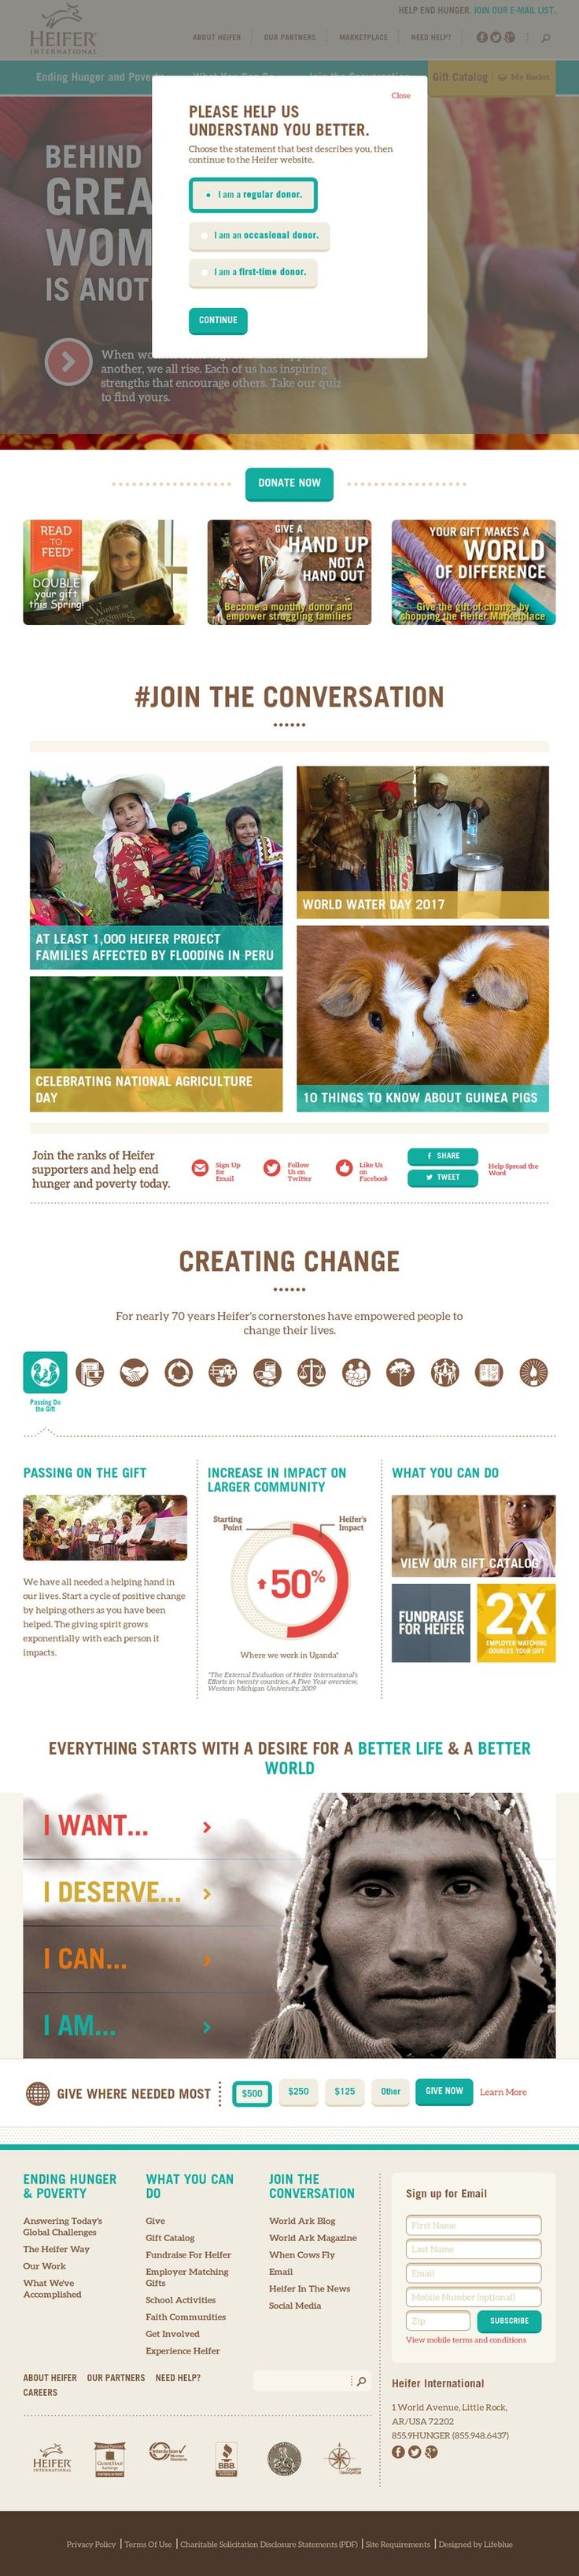 Screenshot of the www.heifer.org homepage by Snapito